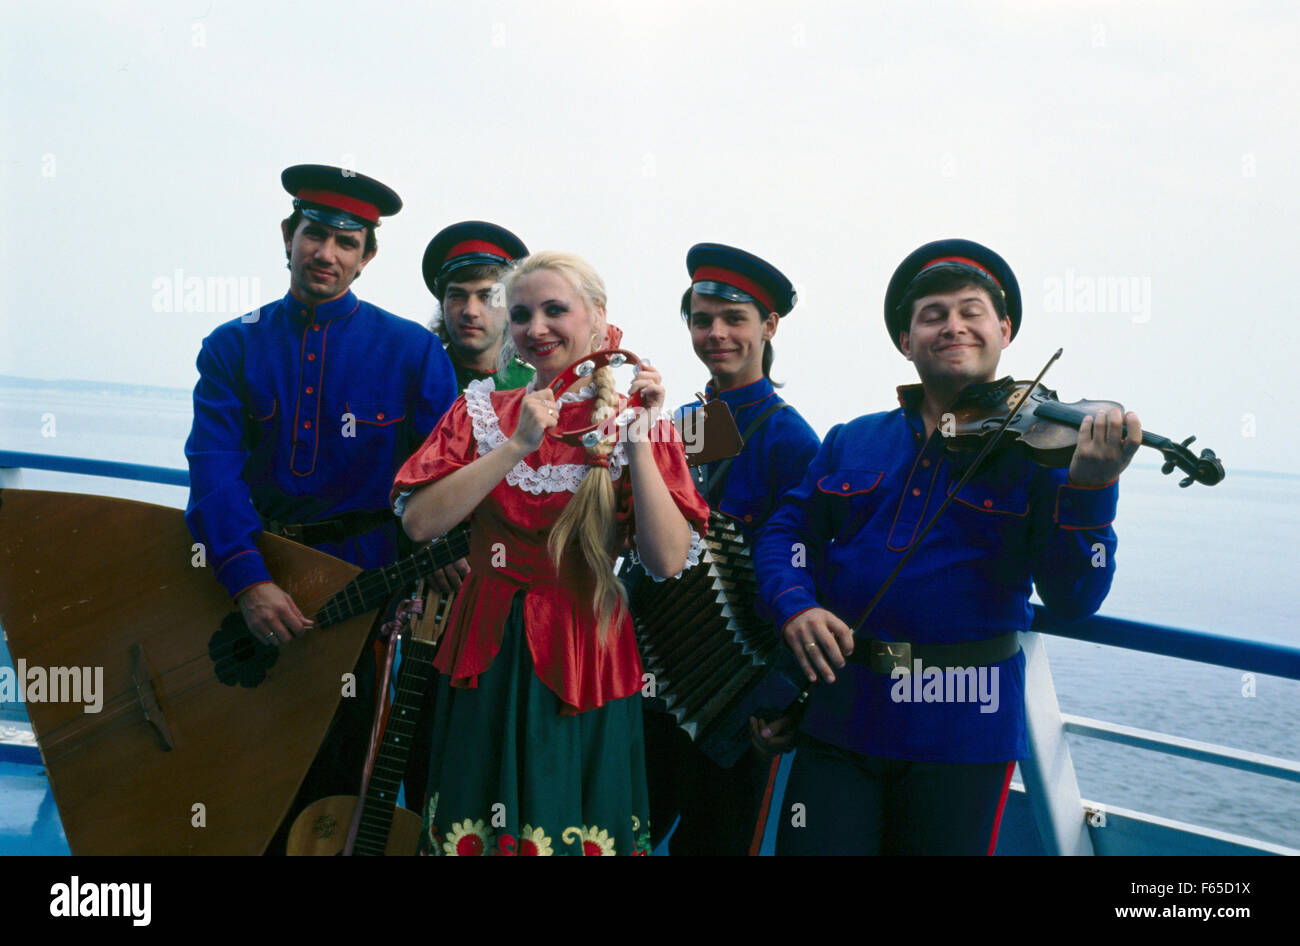 Portrait Of Ships Band In Traditional Costume On A Cruise Ship - Cruise ship costume